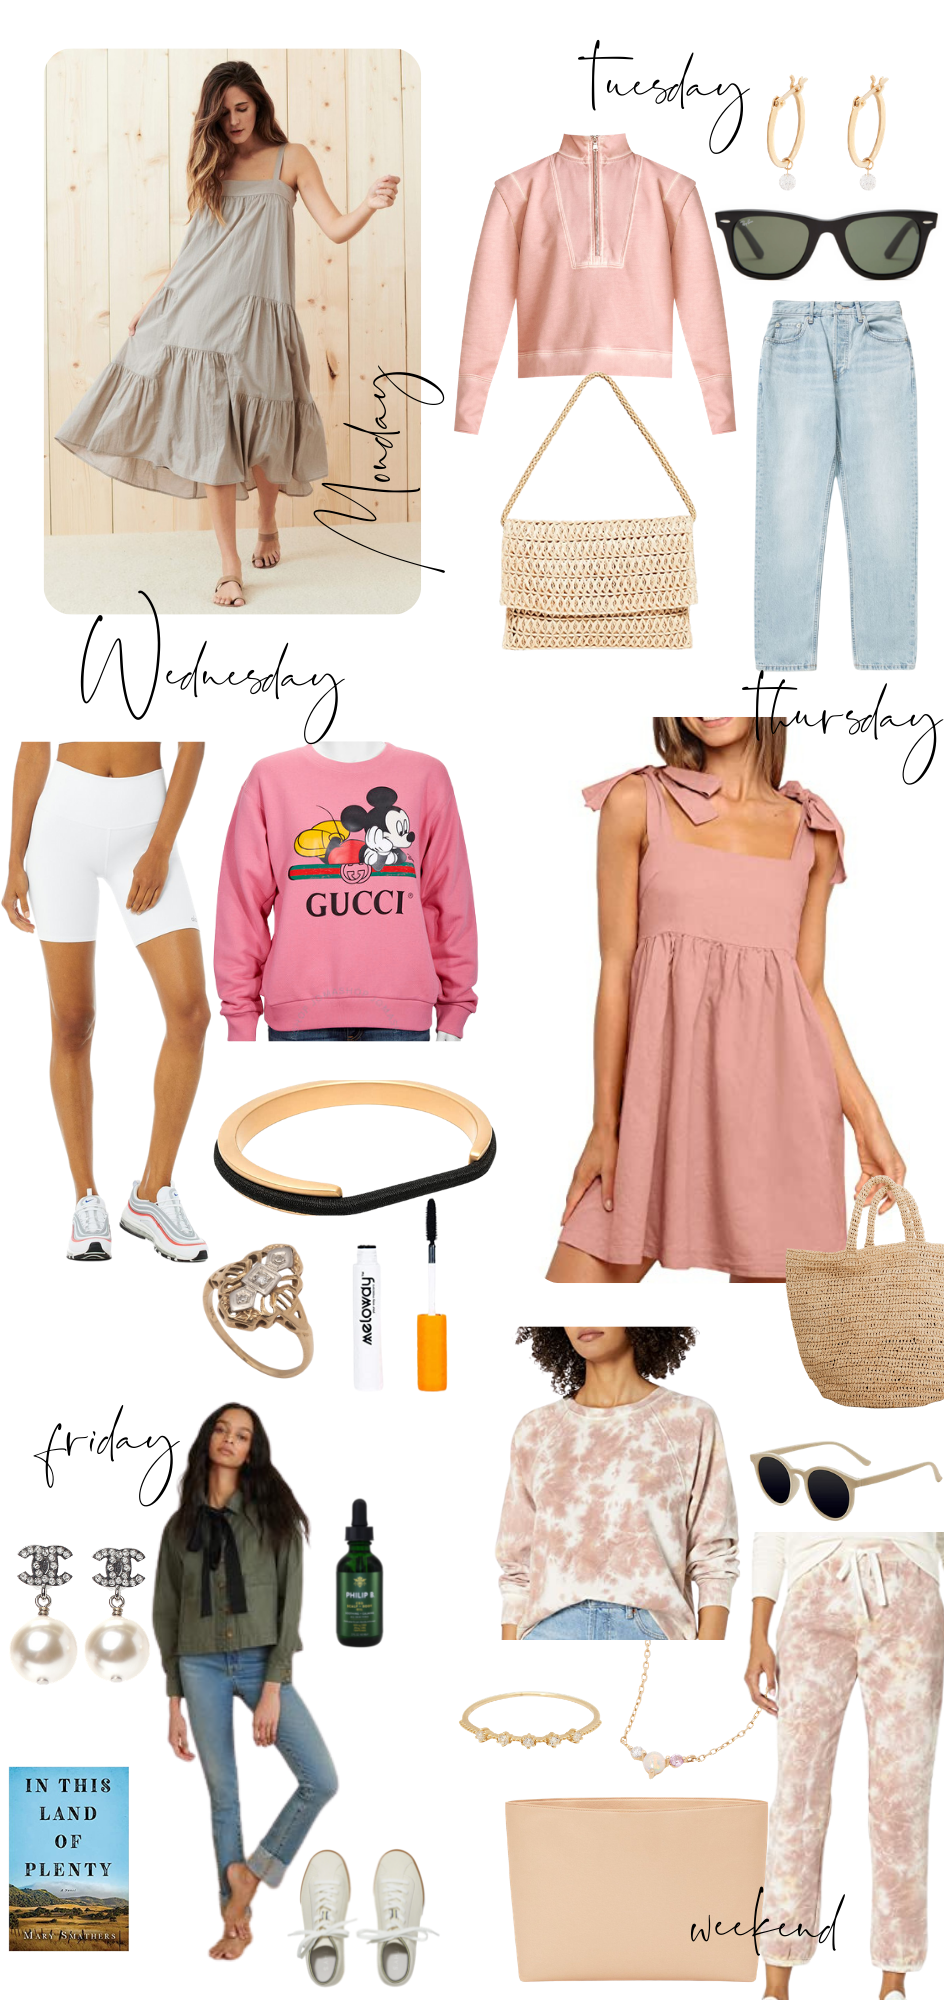 Weekly Outfits by popular Monterey fashion blog, Haute Beauty Guide: collage image of pink mock neck half zip pull over sweatshirt, grey tiered midi dress, black frame sunglasses, gold hoop earrings, woven purse, light wash high waist jeans, white biker shorts, pink Gucci Mickey Mouse sweatshirt, pink tie strap mini dress, Art Deco ring, mellowly mascara, pearl Chanel earrings, gold ring, gold and opal necklace, tan frame sunglasses, green cargo shirt with black necktie, pink and white tie dye sweater shirt and jogger pants set, tan clutch, white tennis shoes, and In This Land of Plenty book.